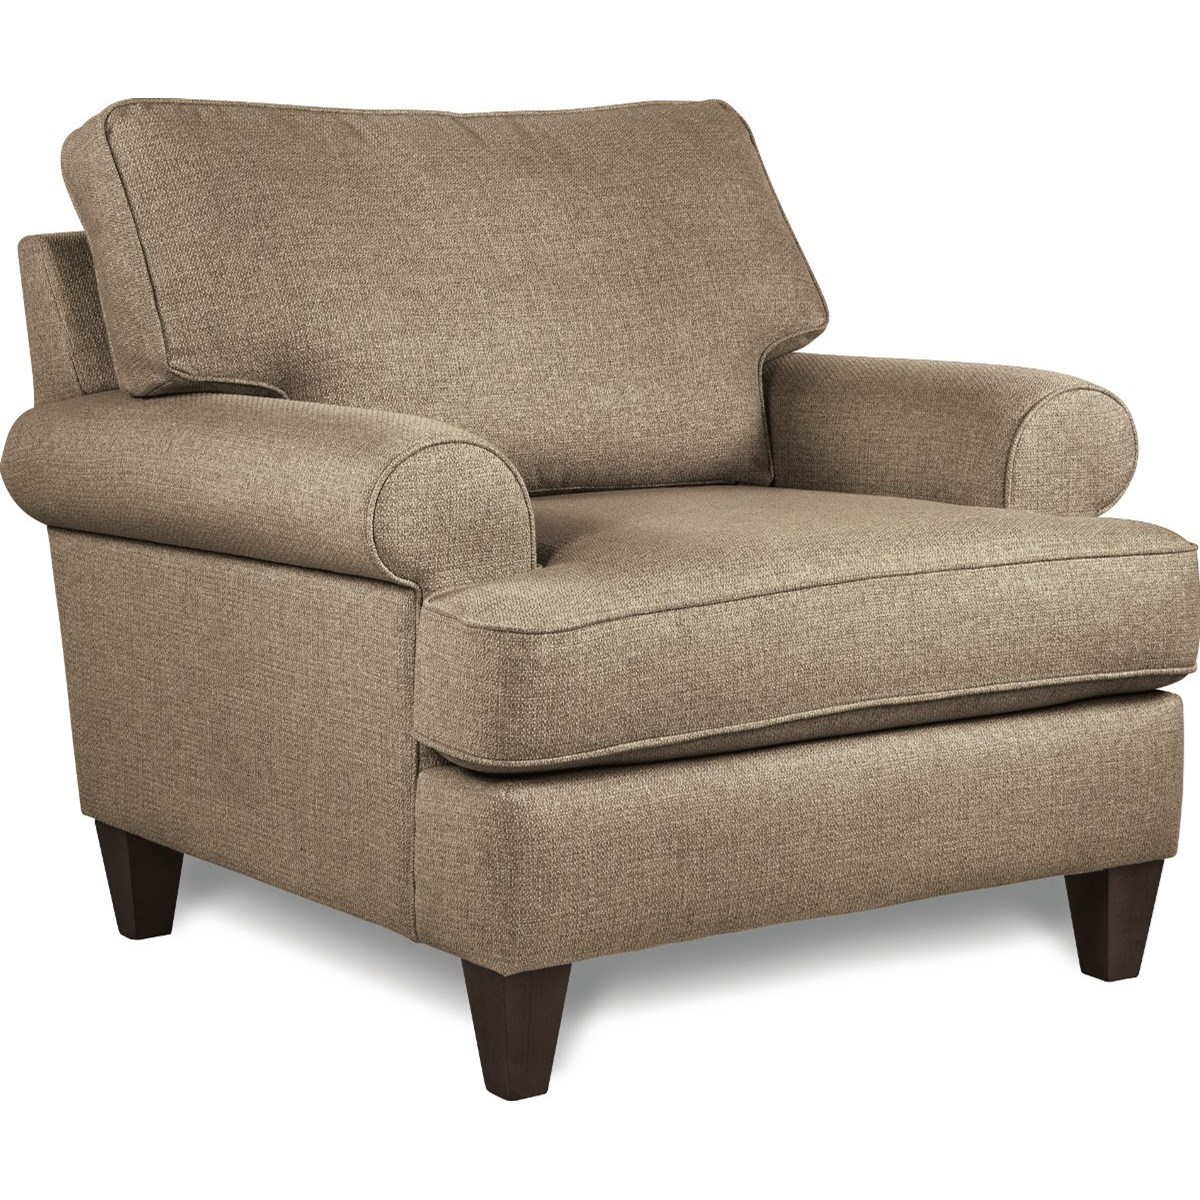 Transitional Chair with Premier ComfortCore Seat Cushion